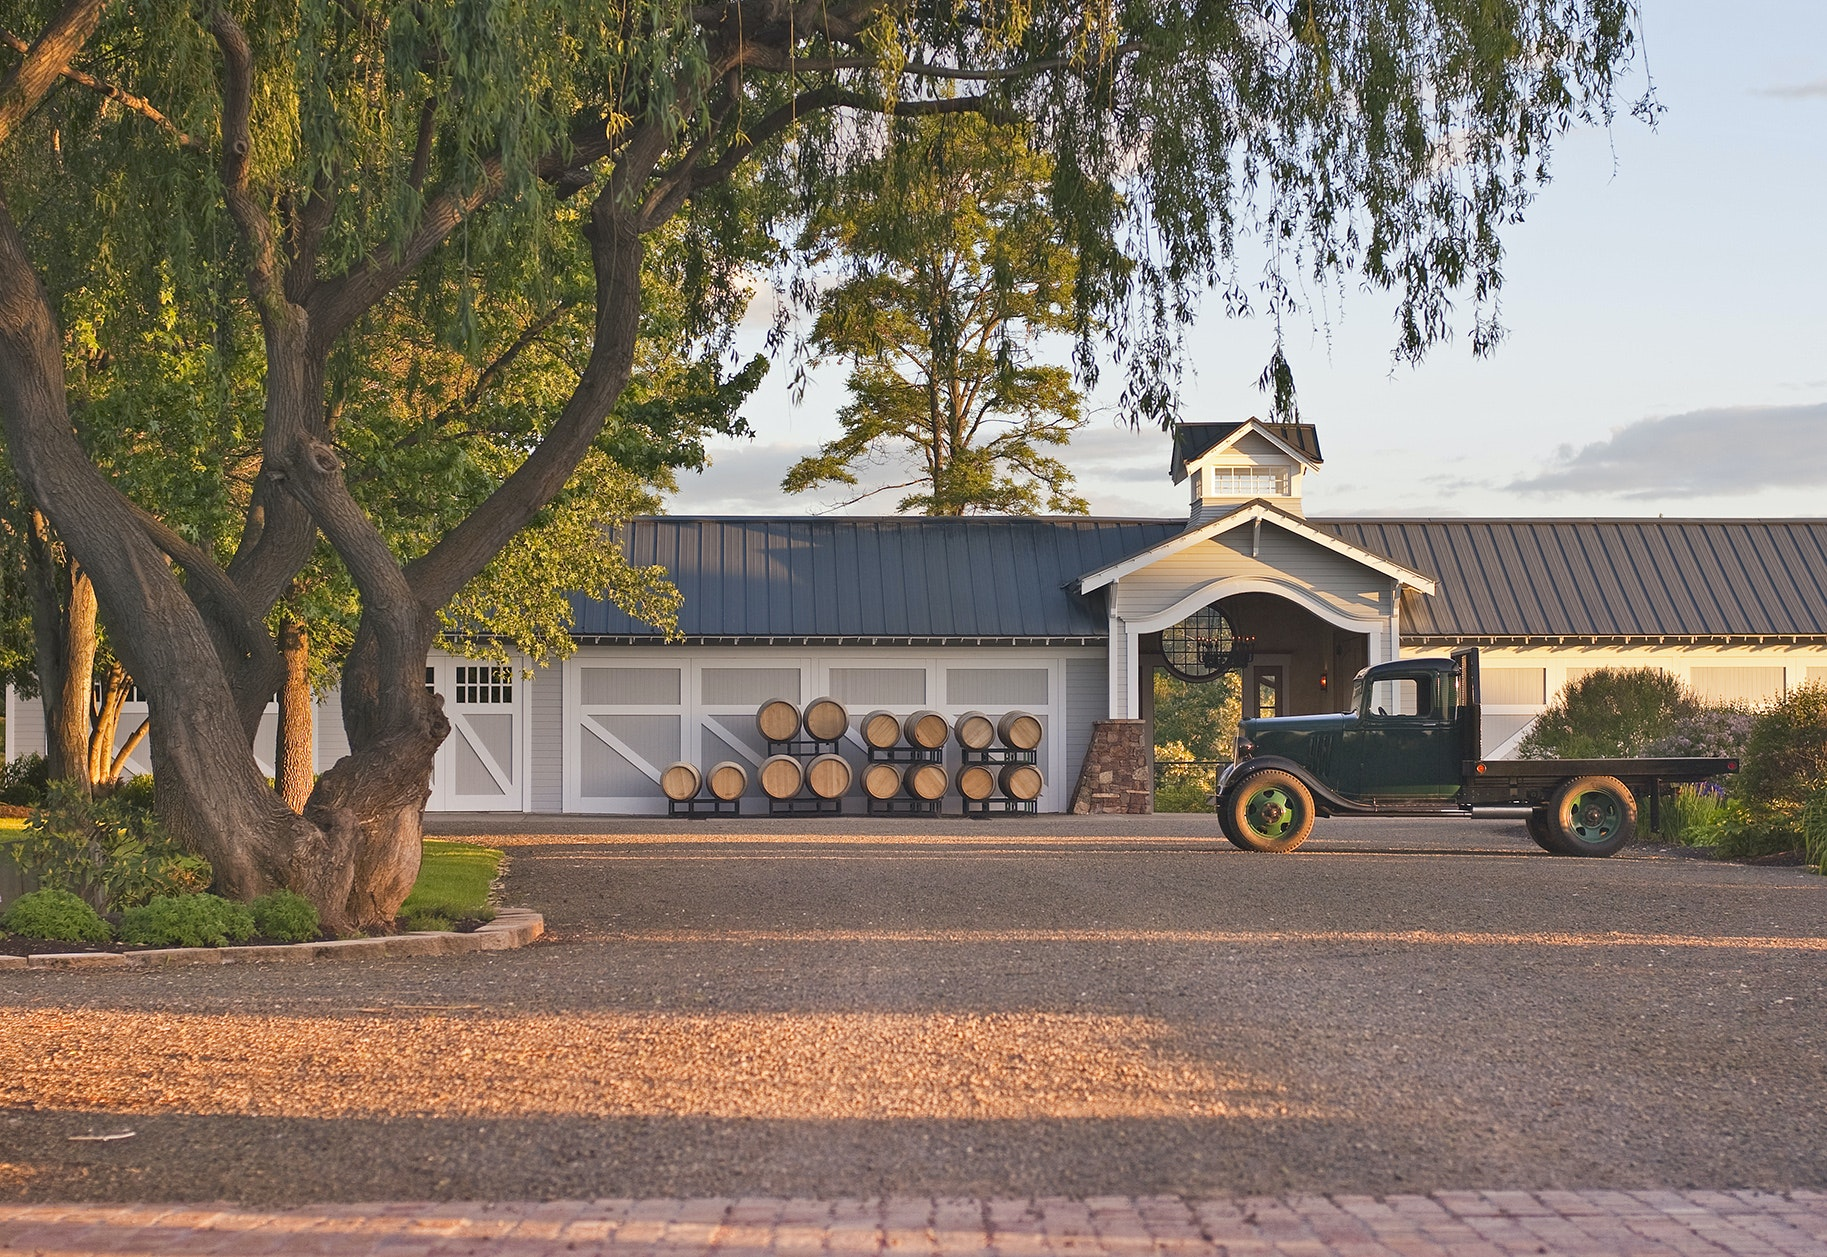 Visits to the Abeja winery's idyllic country farmhouse setting are by appointment only.